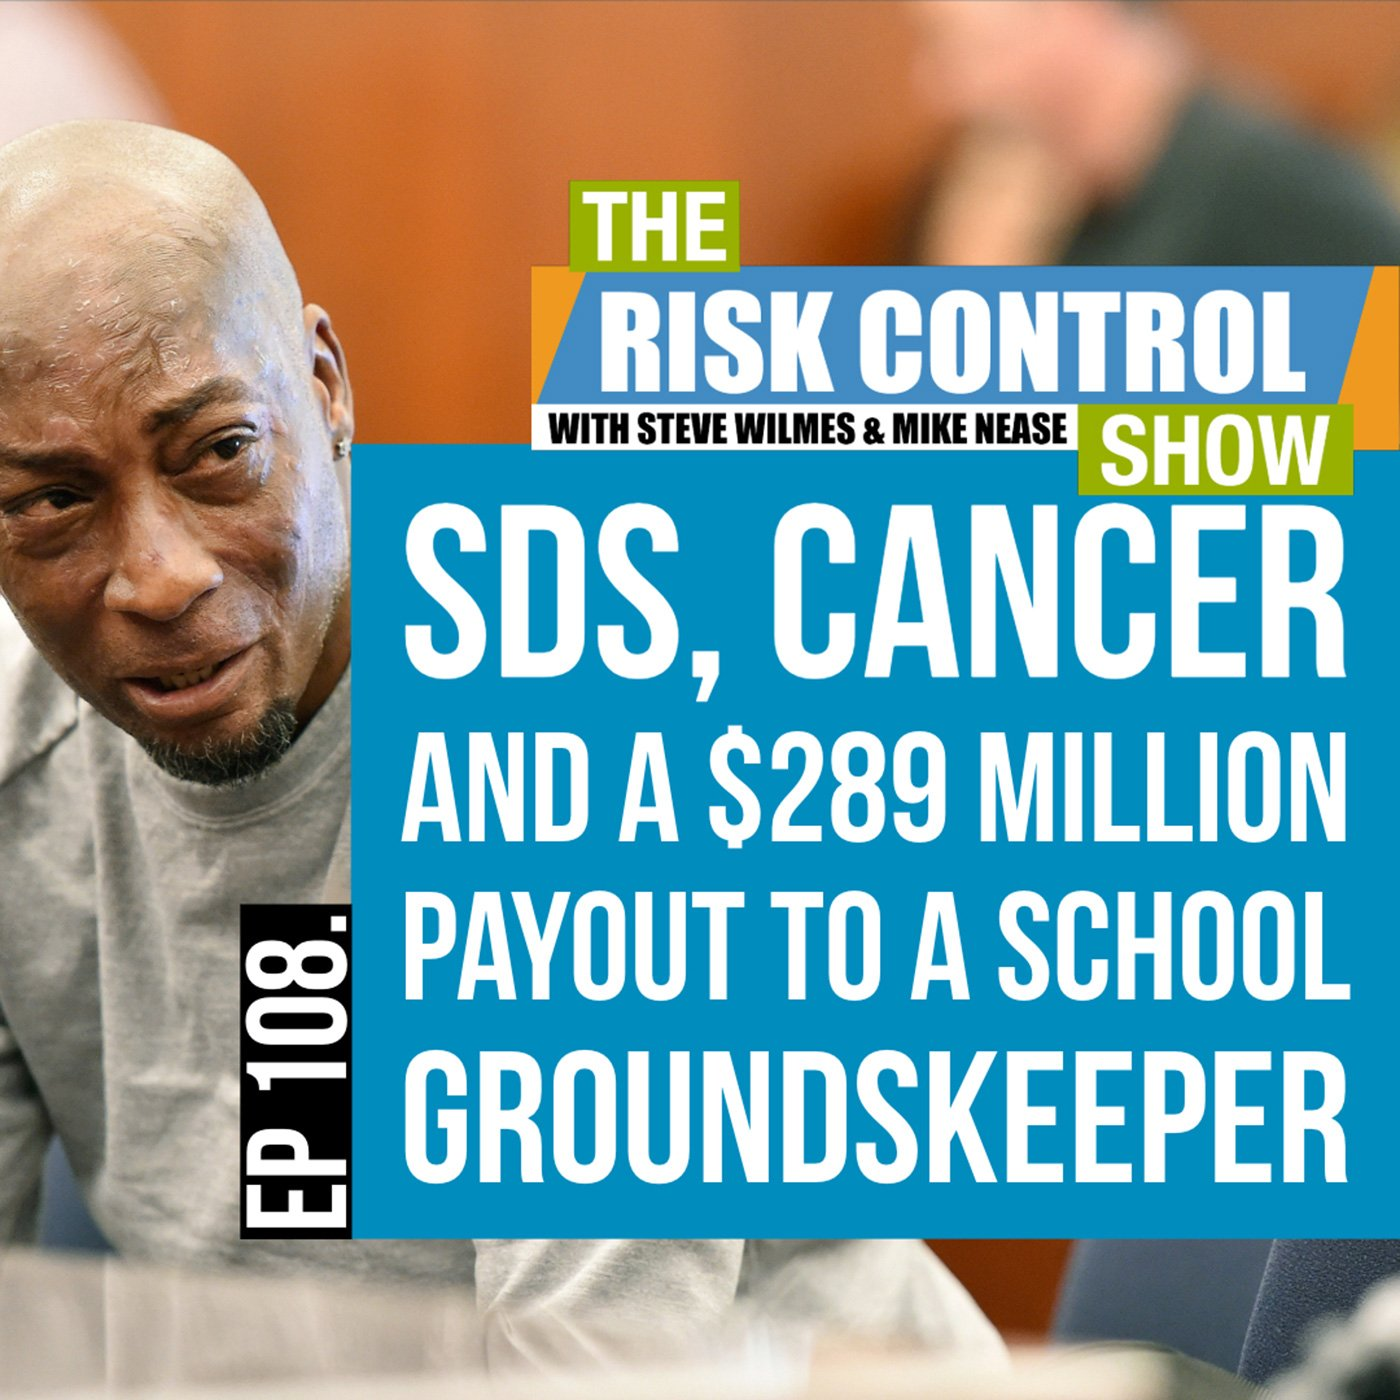 The Risk Control Show - Episode 108